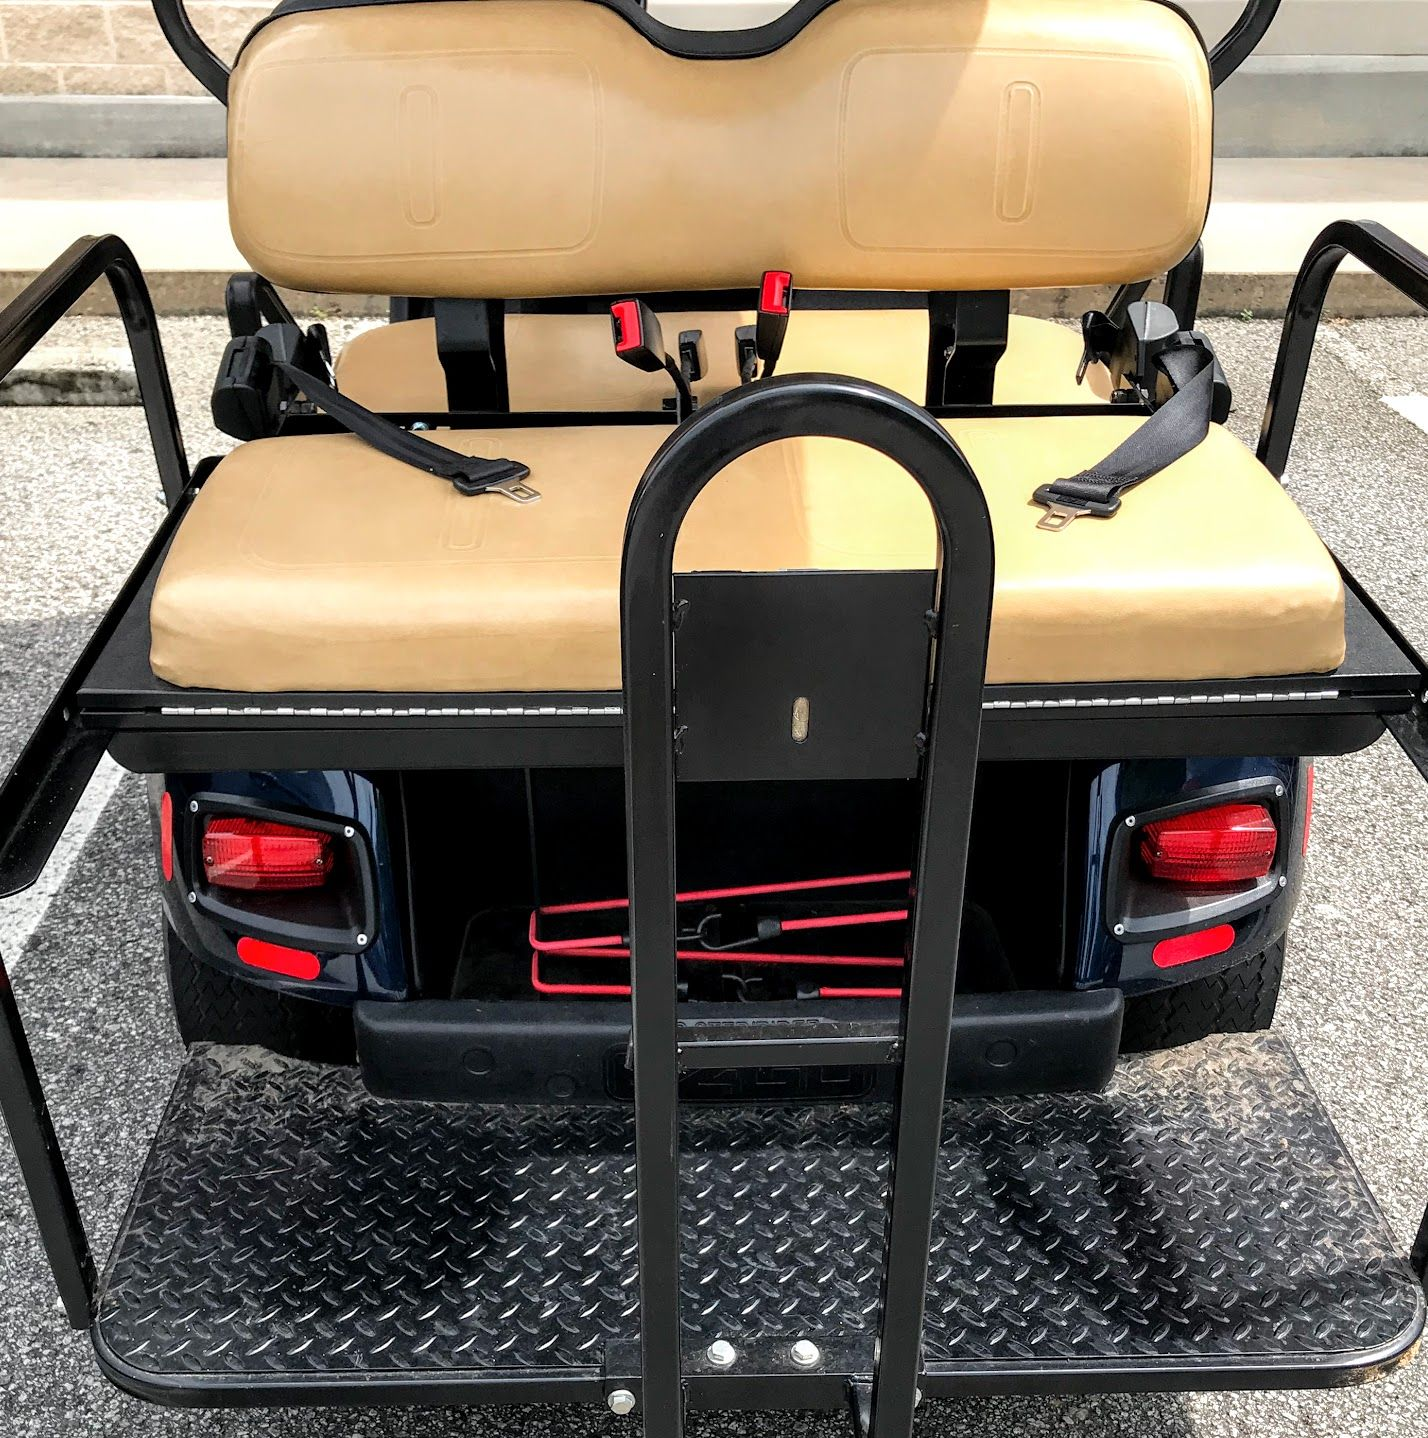 Golf Cart Seat Belts Keep Front and Rear Passengers Safe